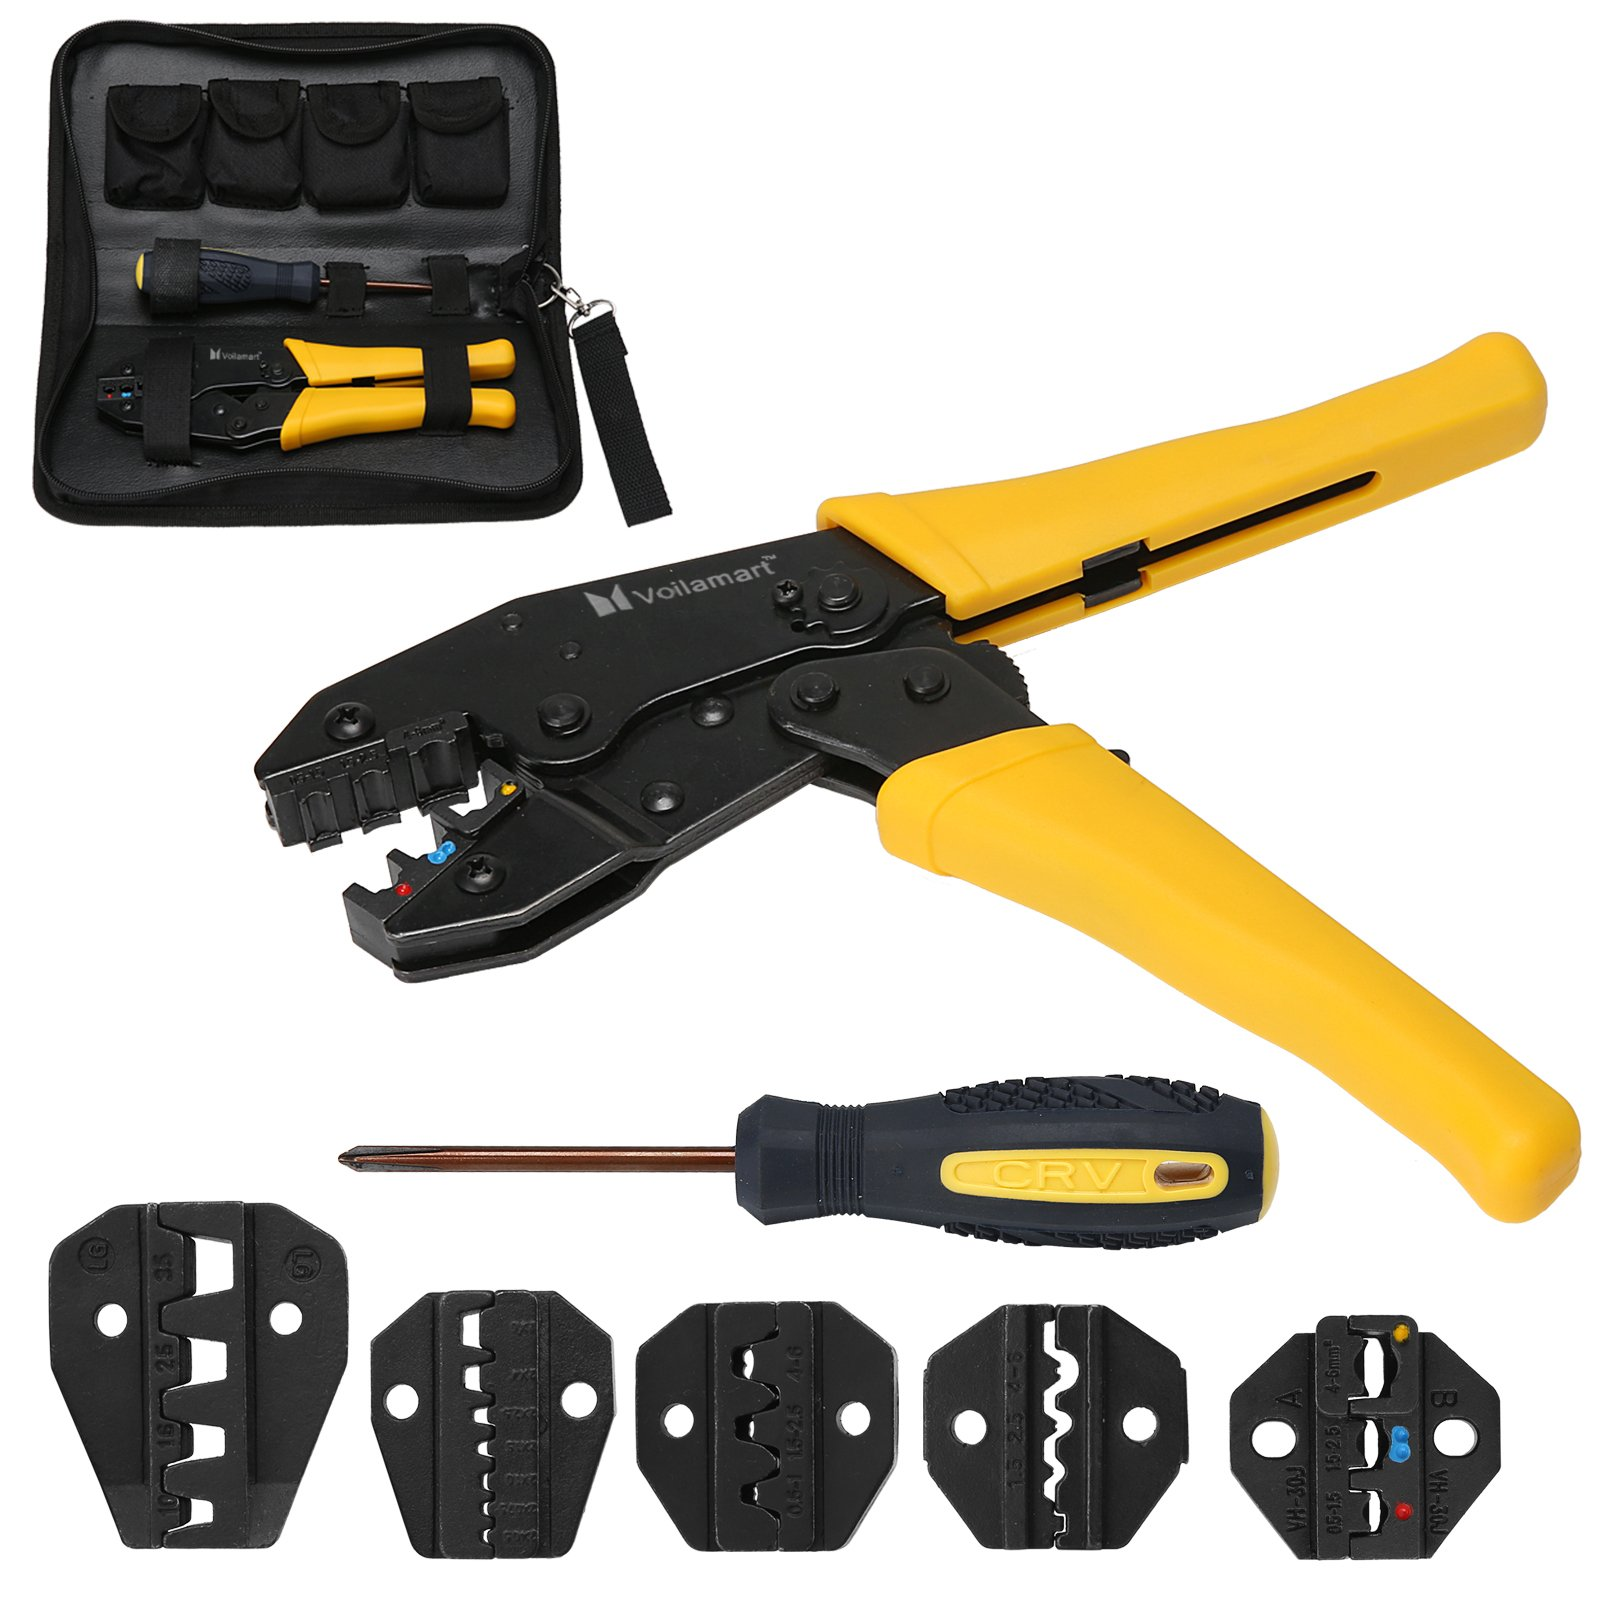 Voilamart Crimping Tool Kit Terminal Ratchet Plier Crimper 5 Interchangeable Die Sets Insulated Non-insulated Cable Wire Hand Tool All in One Pack with Bag